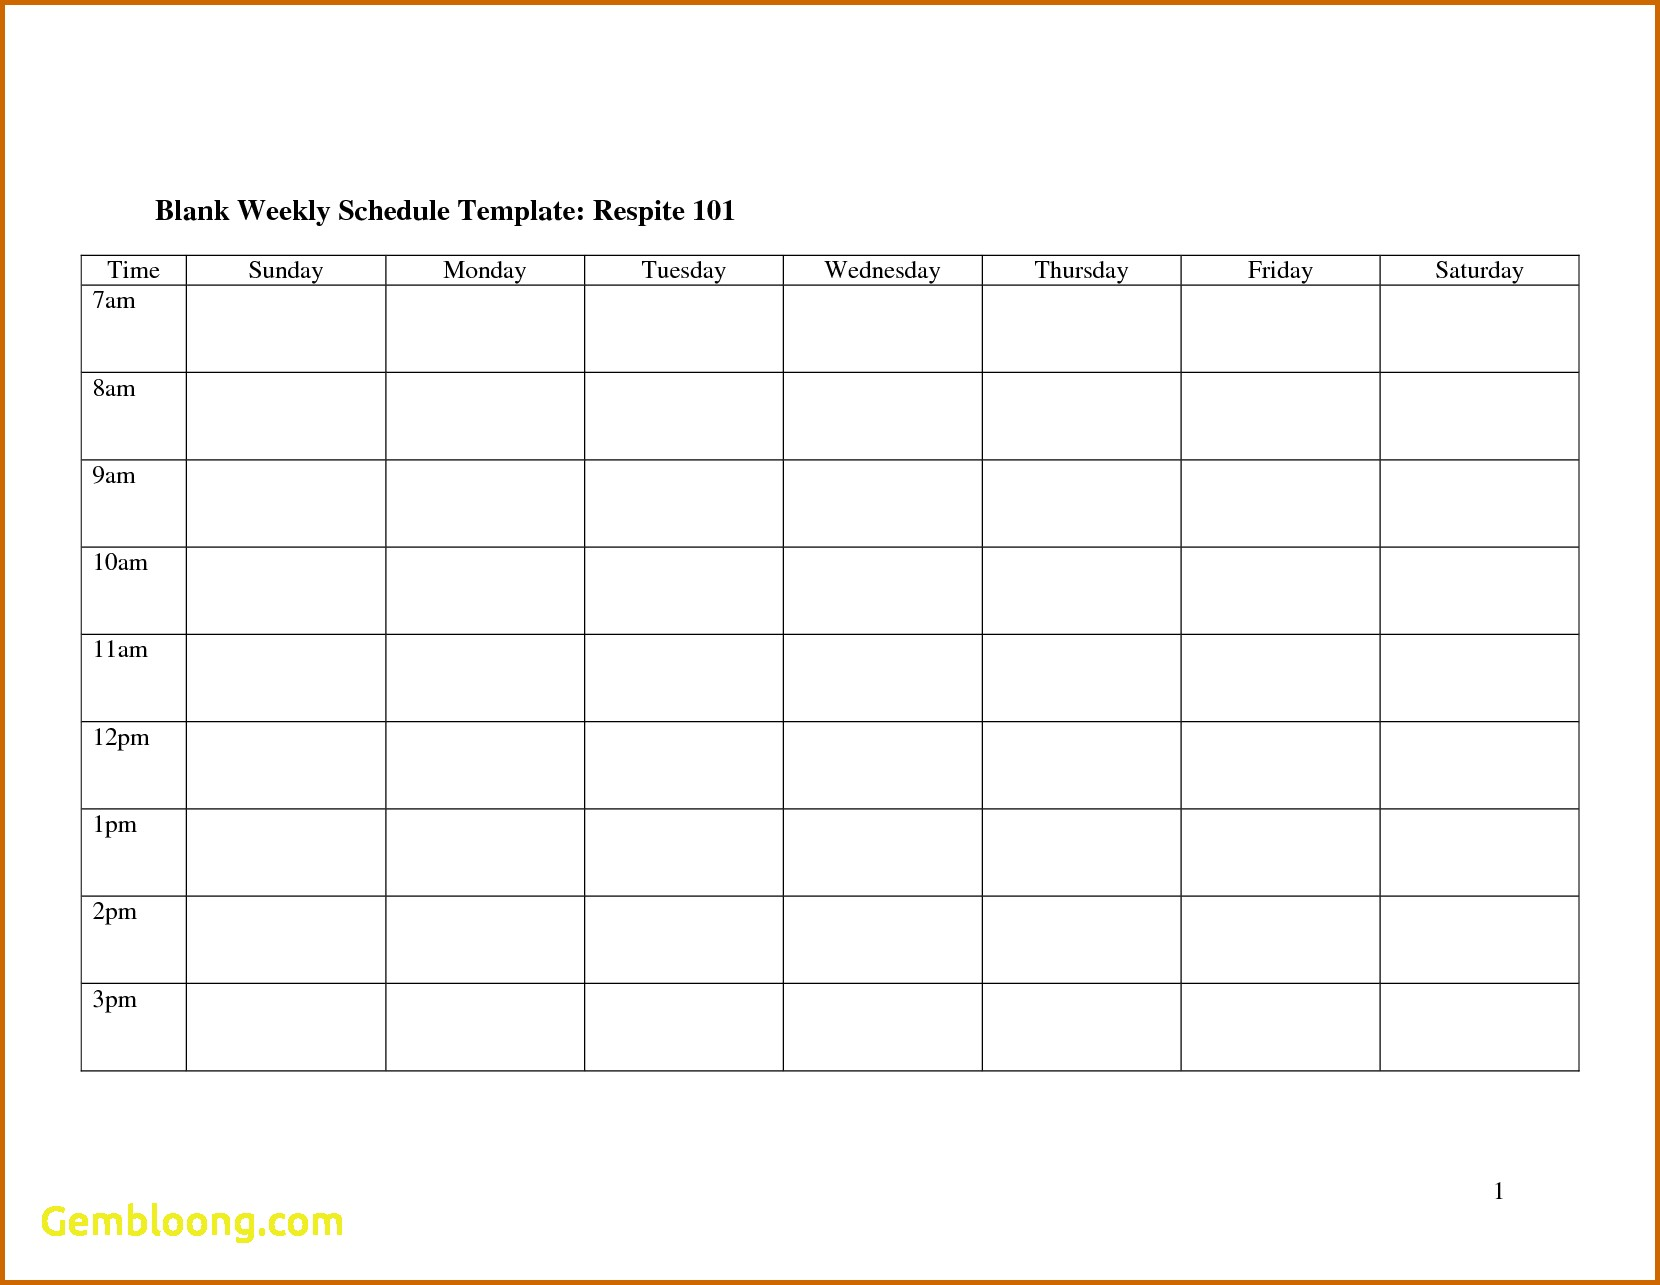 Blank Monthly Work Schedule Template 7 – el parga